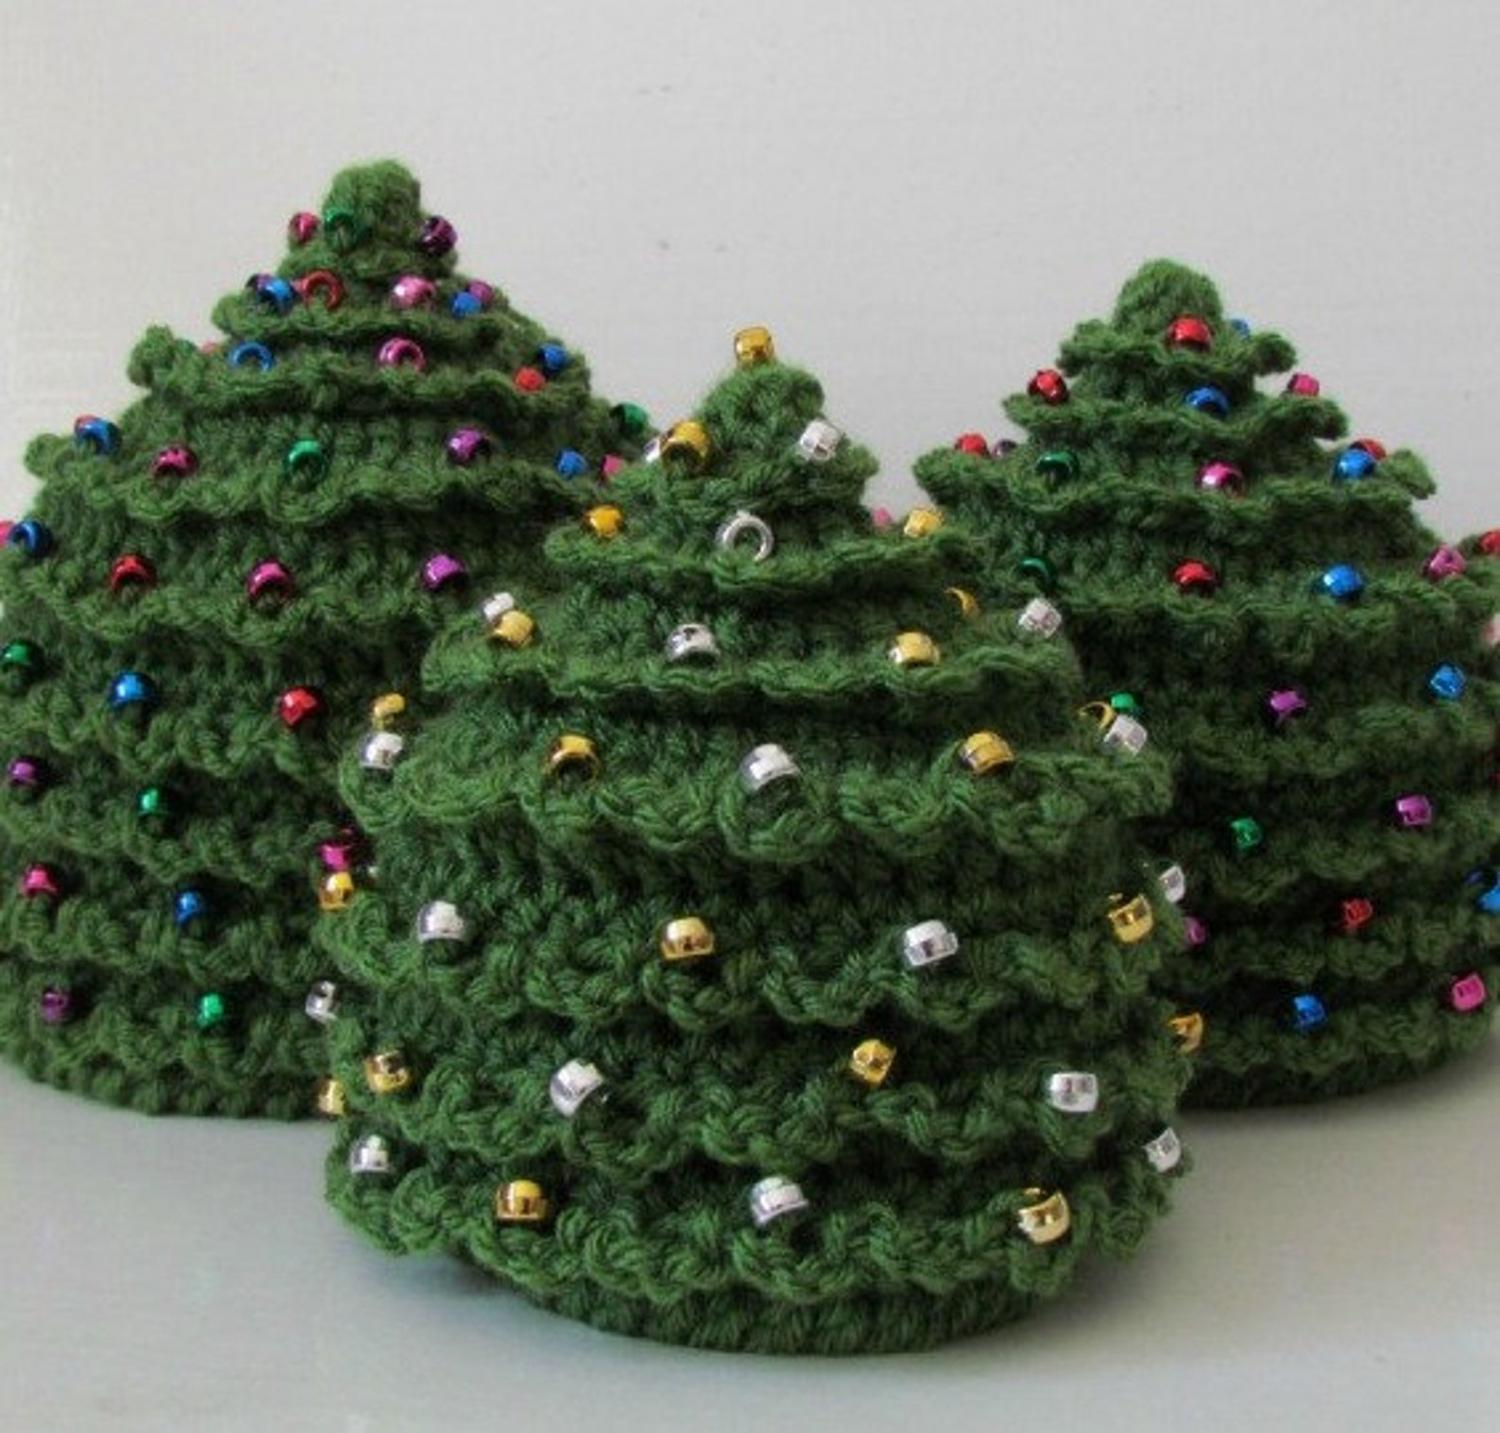 Christmas CROCHET PATTERN HAT Christmas Tree : In 5 Sizes Newborn To Teen/Adult Beaded